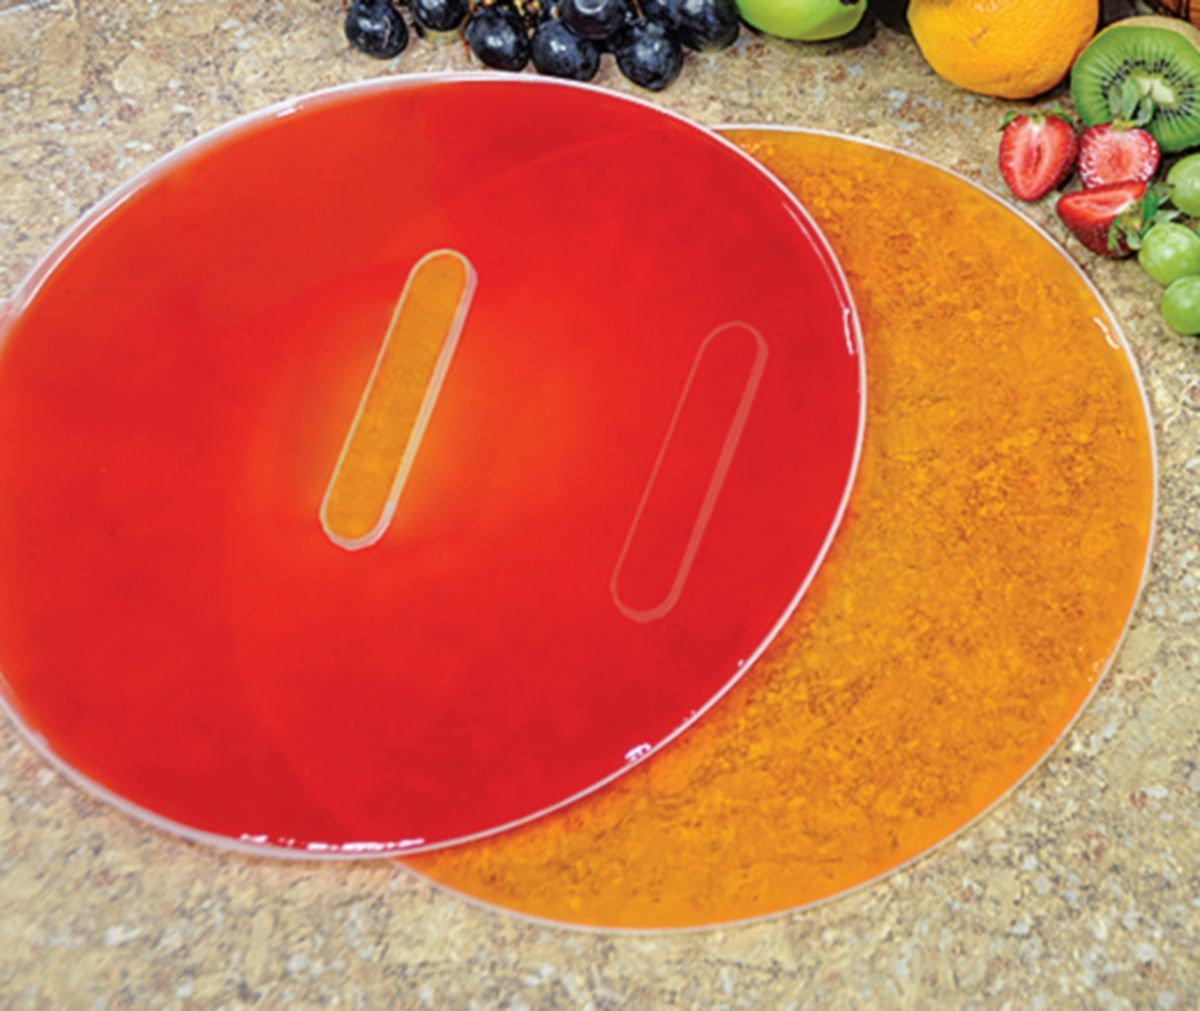 Cabela's Dial Dehydrator Fruit Roll-Up Tray